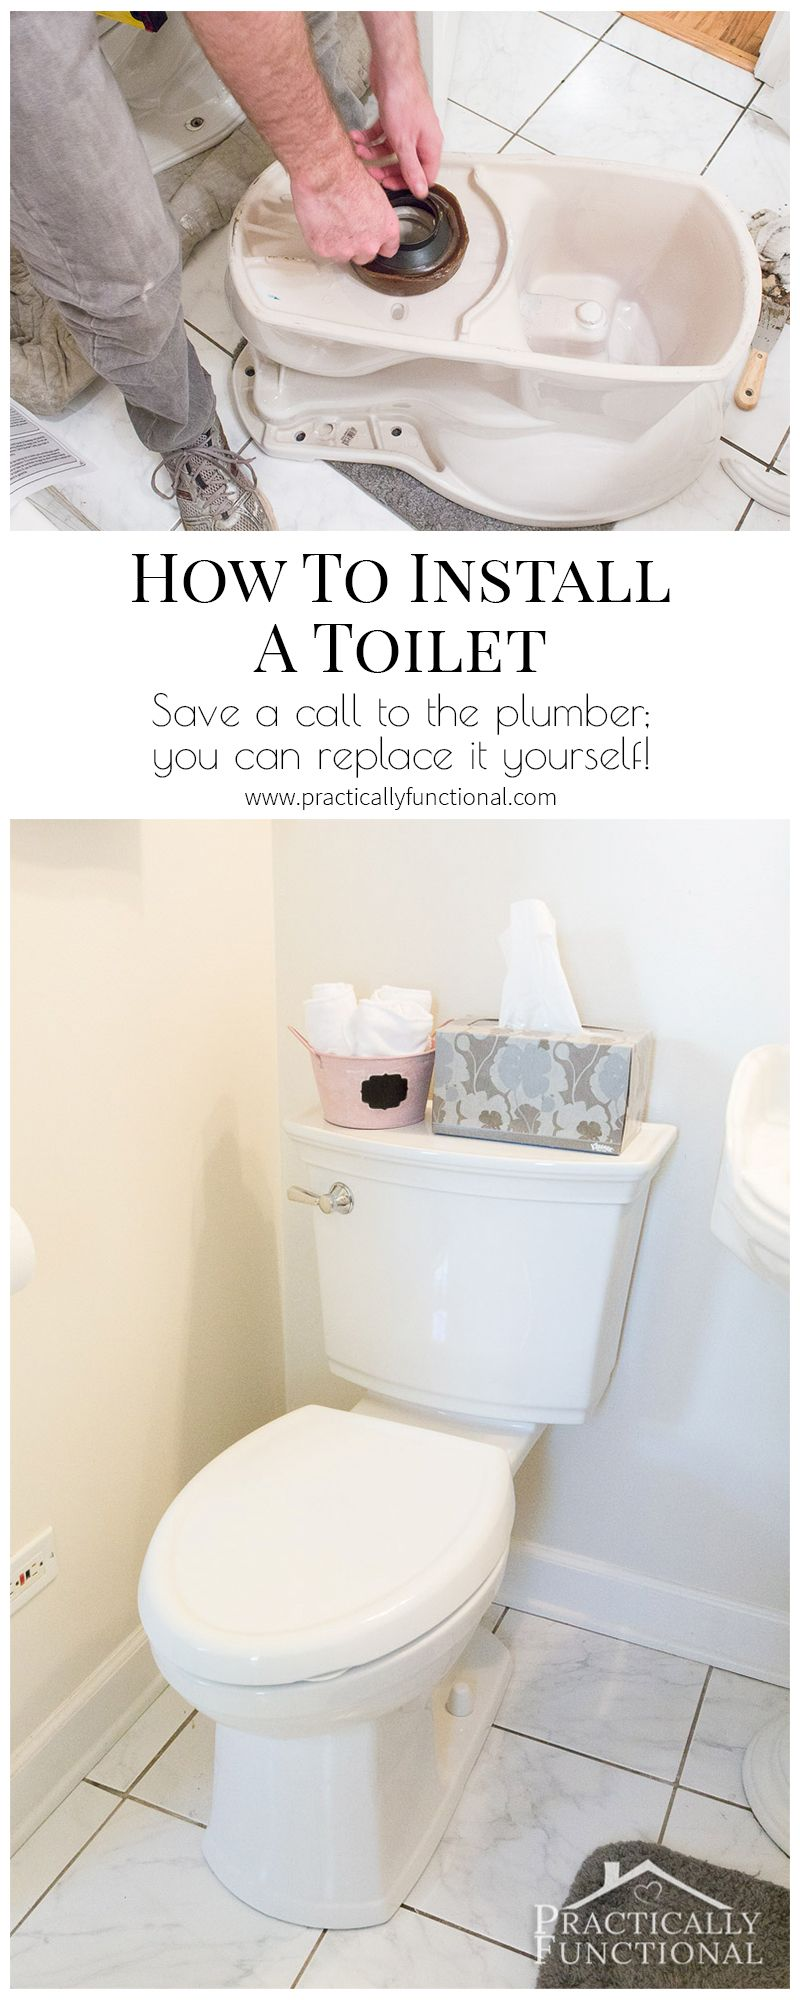 I Never Knew It Was This Easy To Install A Toilet Myself Great Tutorial Diy Home Repair Diy Plumbing Toilet